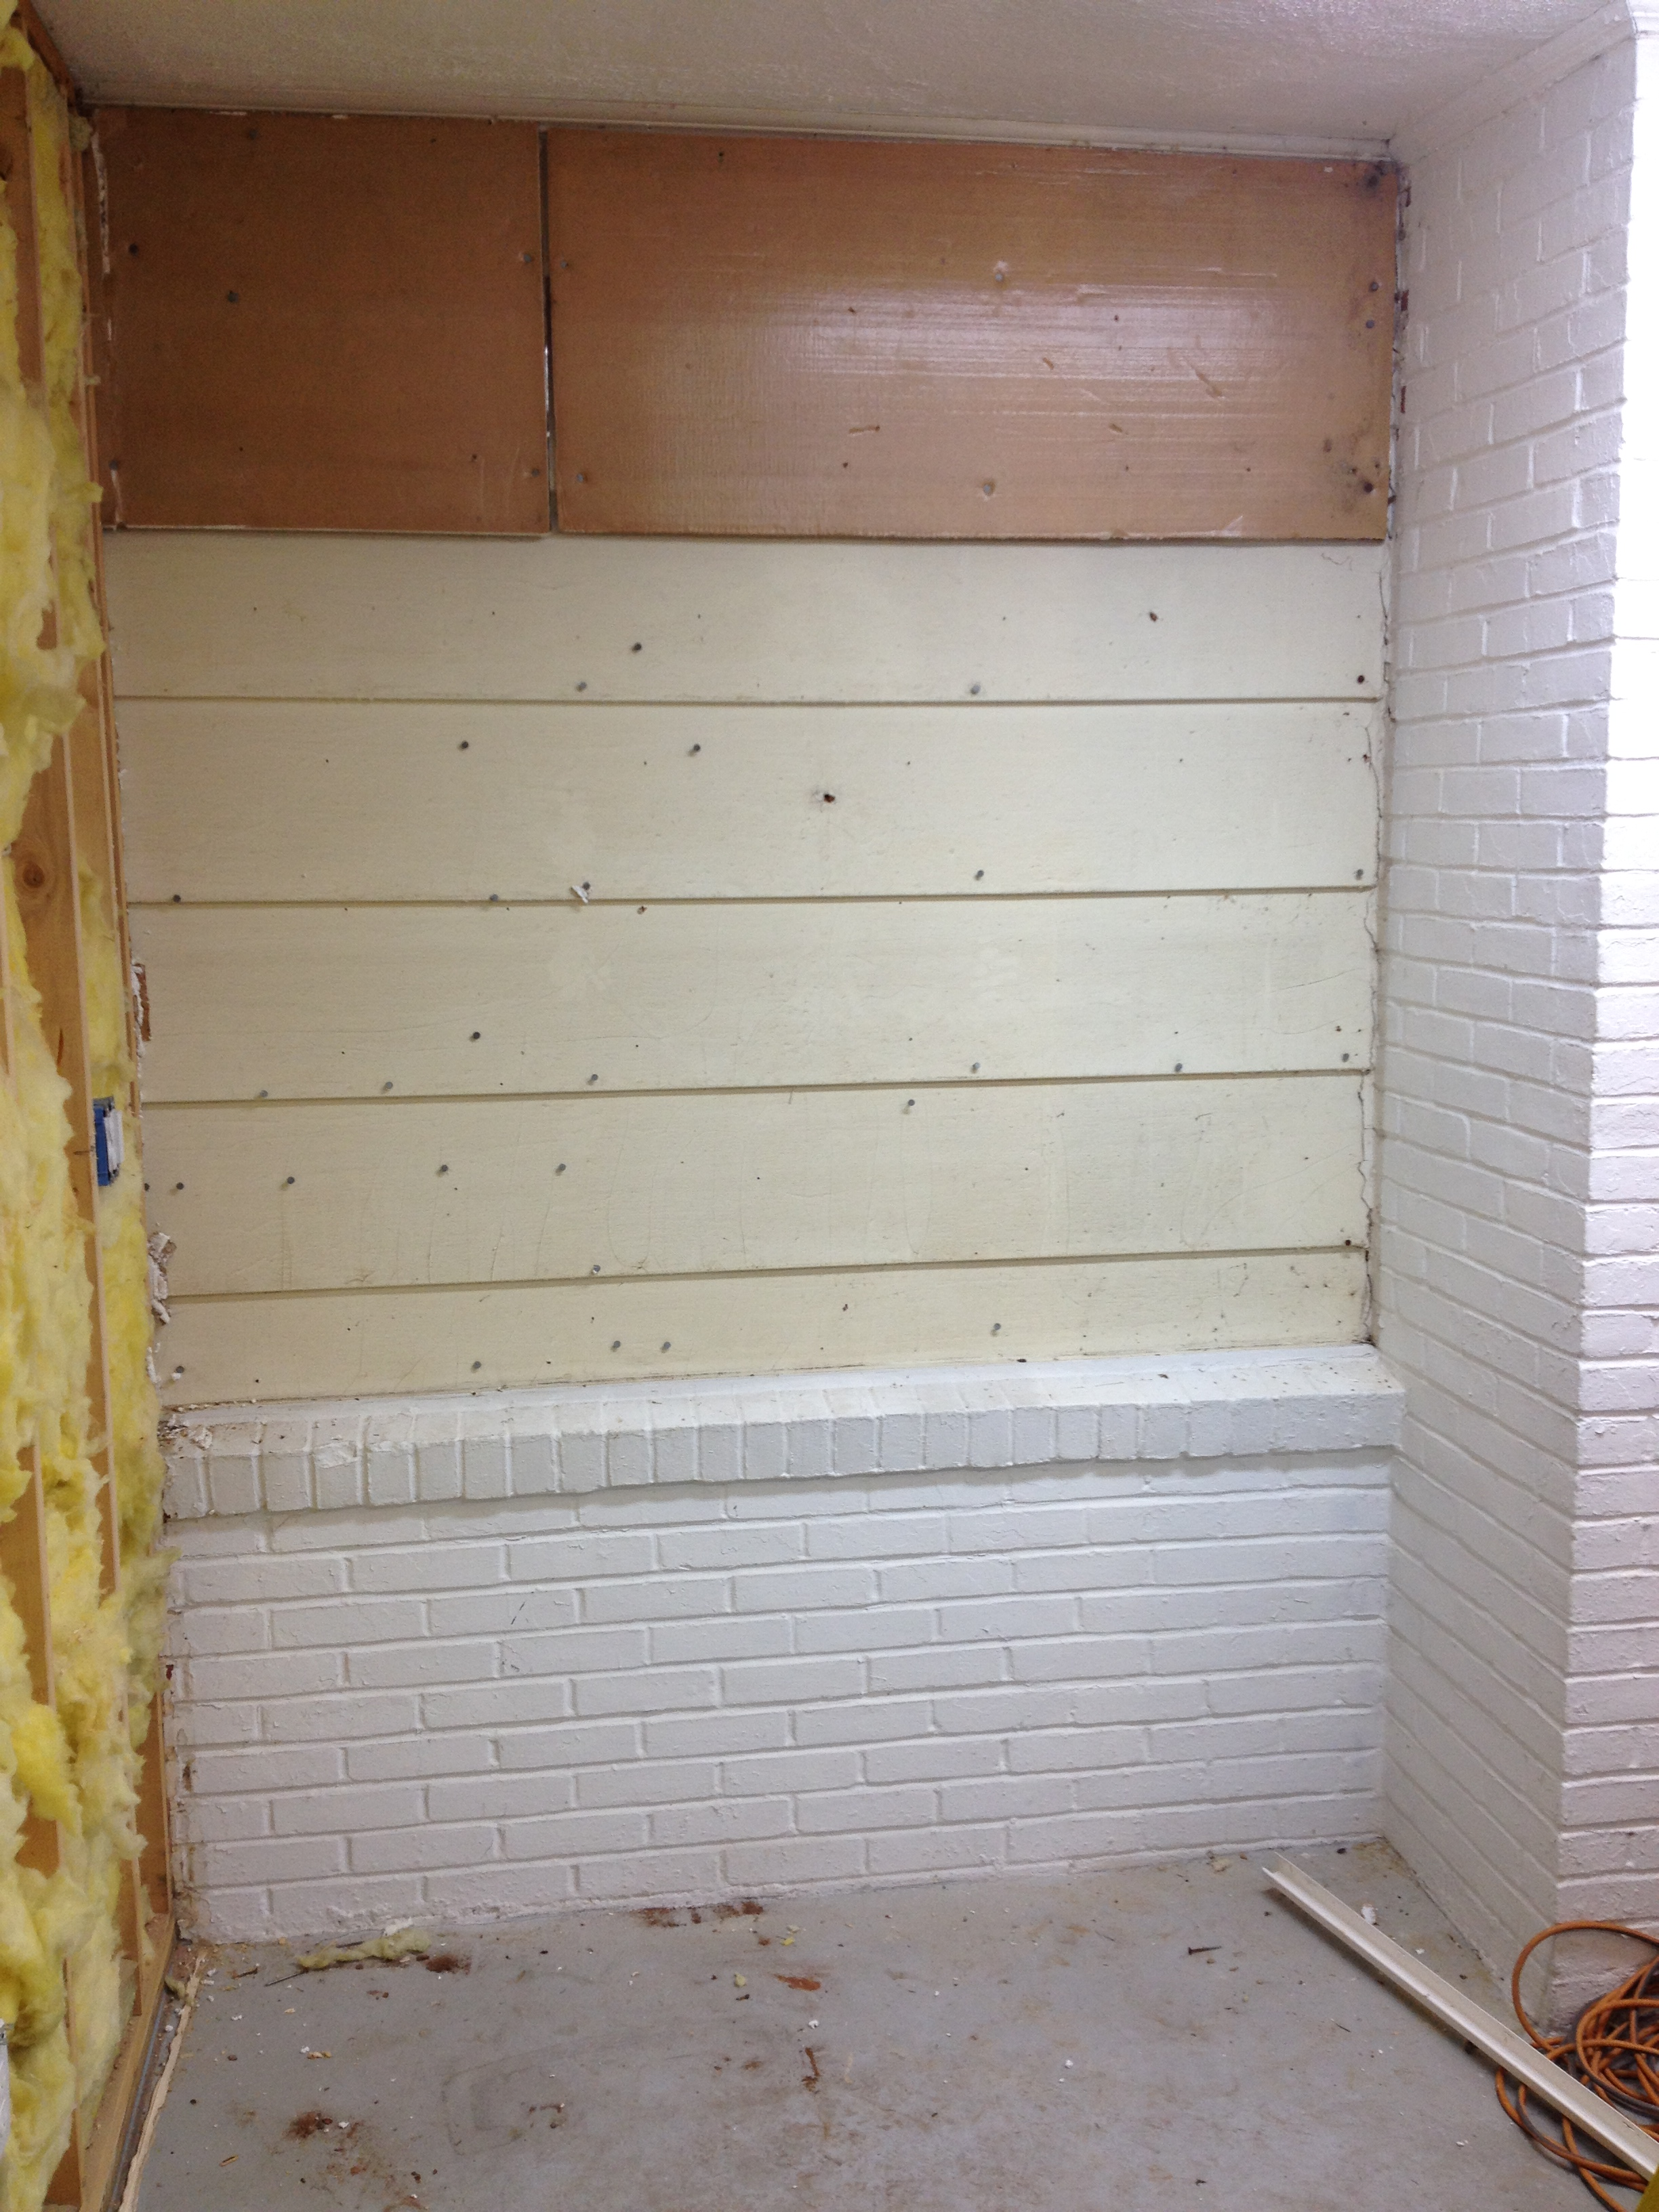 How to hang drywall on walls - This Side Of The Garage Posed The Biggest Challenge For Hanging Drywall Because We Had